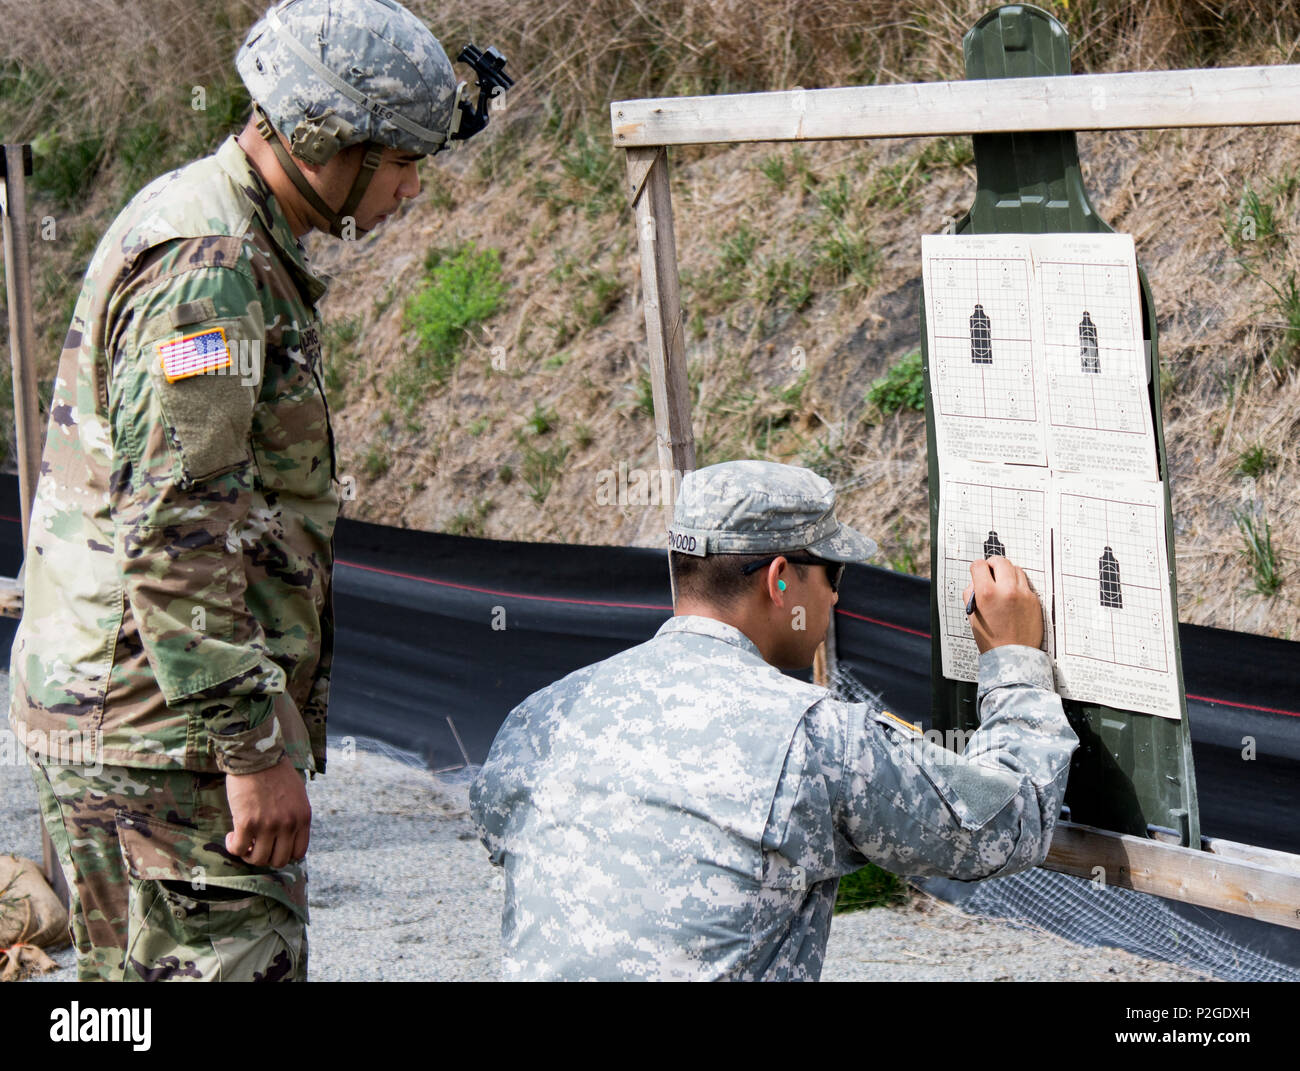 U.S. Army Spc. Ricardo Rodriguez, a light wheel vehicle mechanic assigned to the New York Army National Guard 145th Maintenance Battalion, reviews his zeroing score for the M4A1 on his target with range safety, Sgt. Julio Redwood, also with the 145th Maintenance Battalion, at Camp Smith Training Site, 20 September 2016. The Soldiers were qualifying in order to go on State Active Duty to reinforce Joint Task Force Empire Shield, the New York National Guard security force in New York City, at the direction of Governor Andrew M. Cuomo, in response to increased security concerns in the city follow Stock Photo